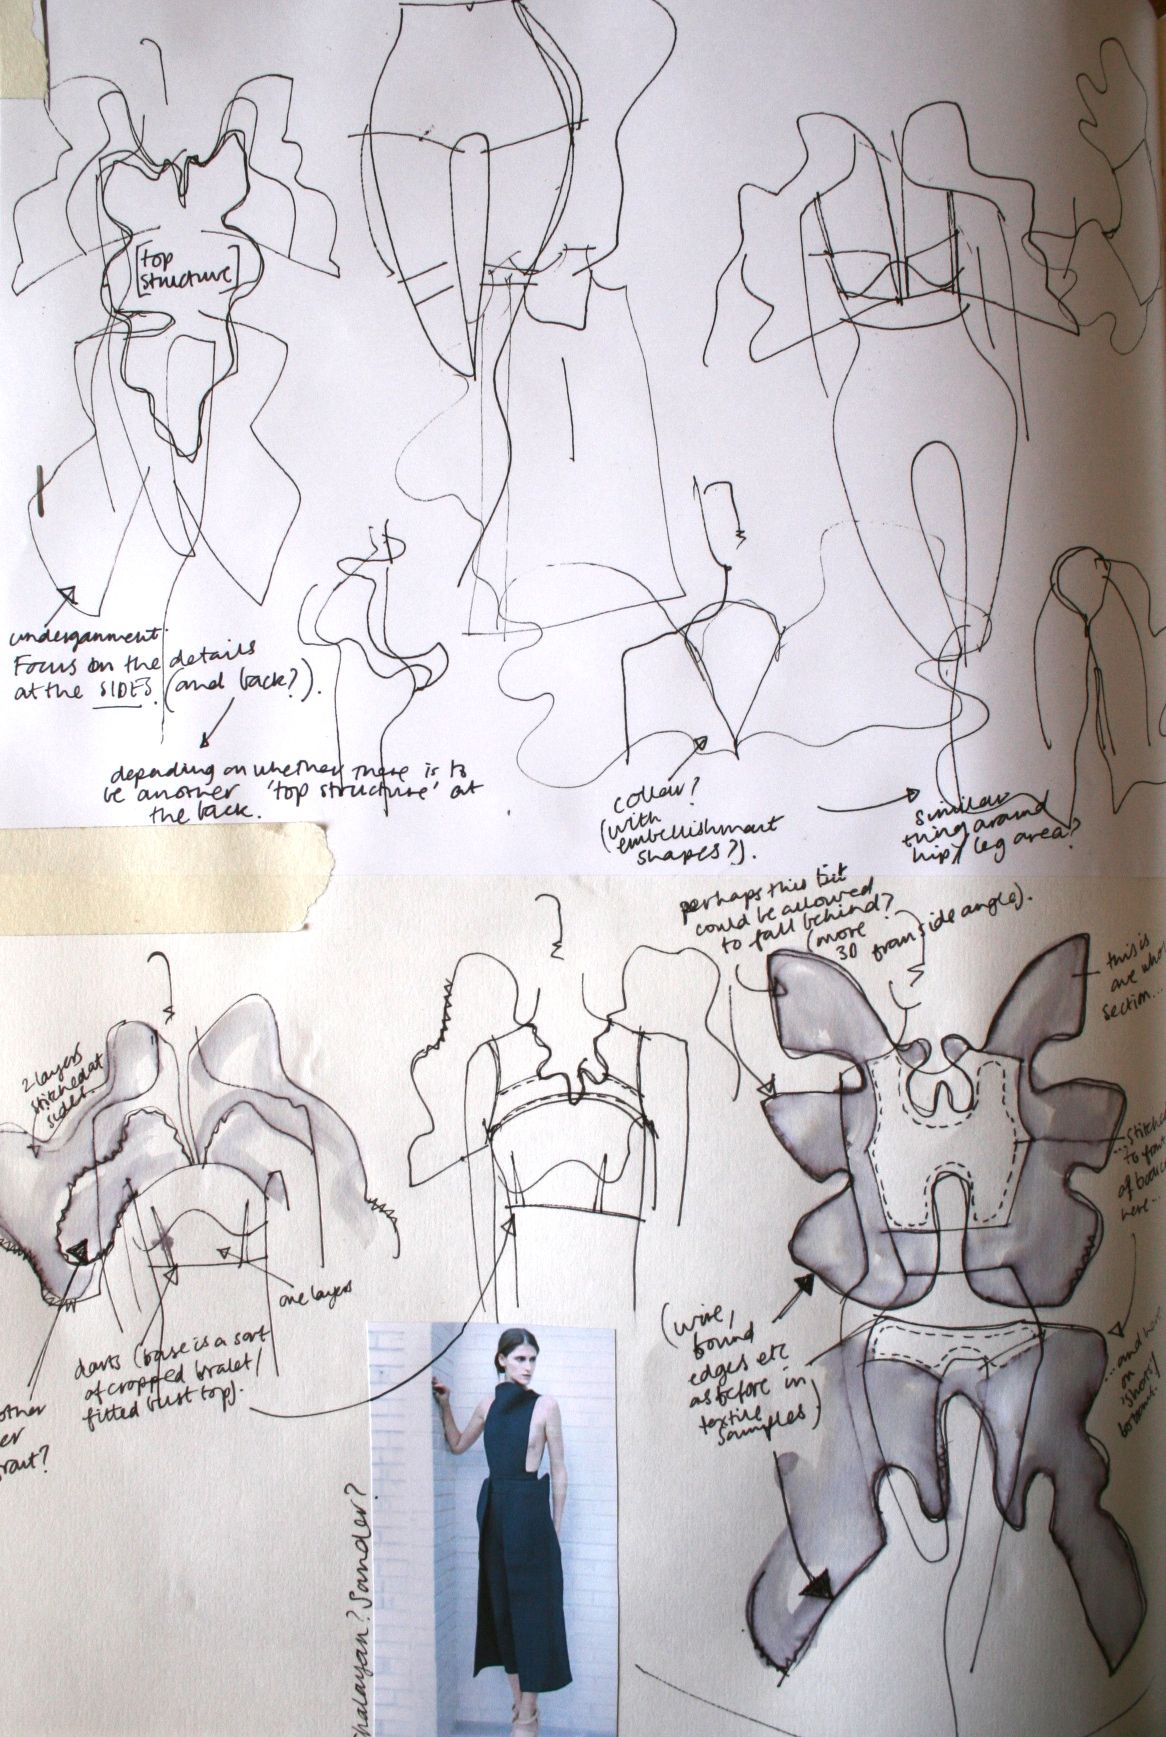 Fashion Sketchbook Fashion Design Development Process With Dress Sketches Annotation Creative Fashion Portfol Fashion Sketchbook Sketch Book Fashion Drawing